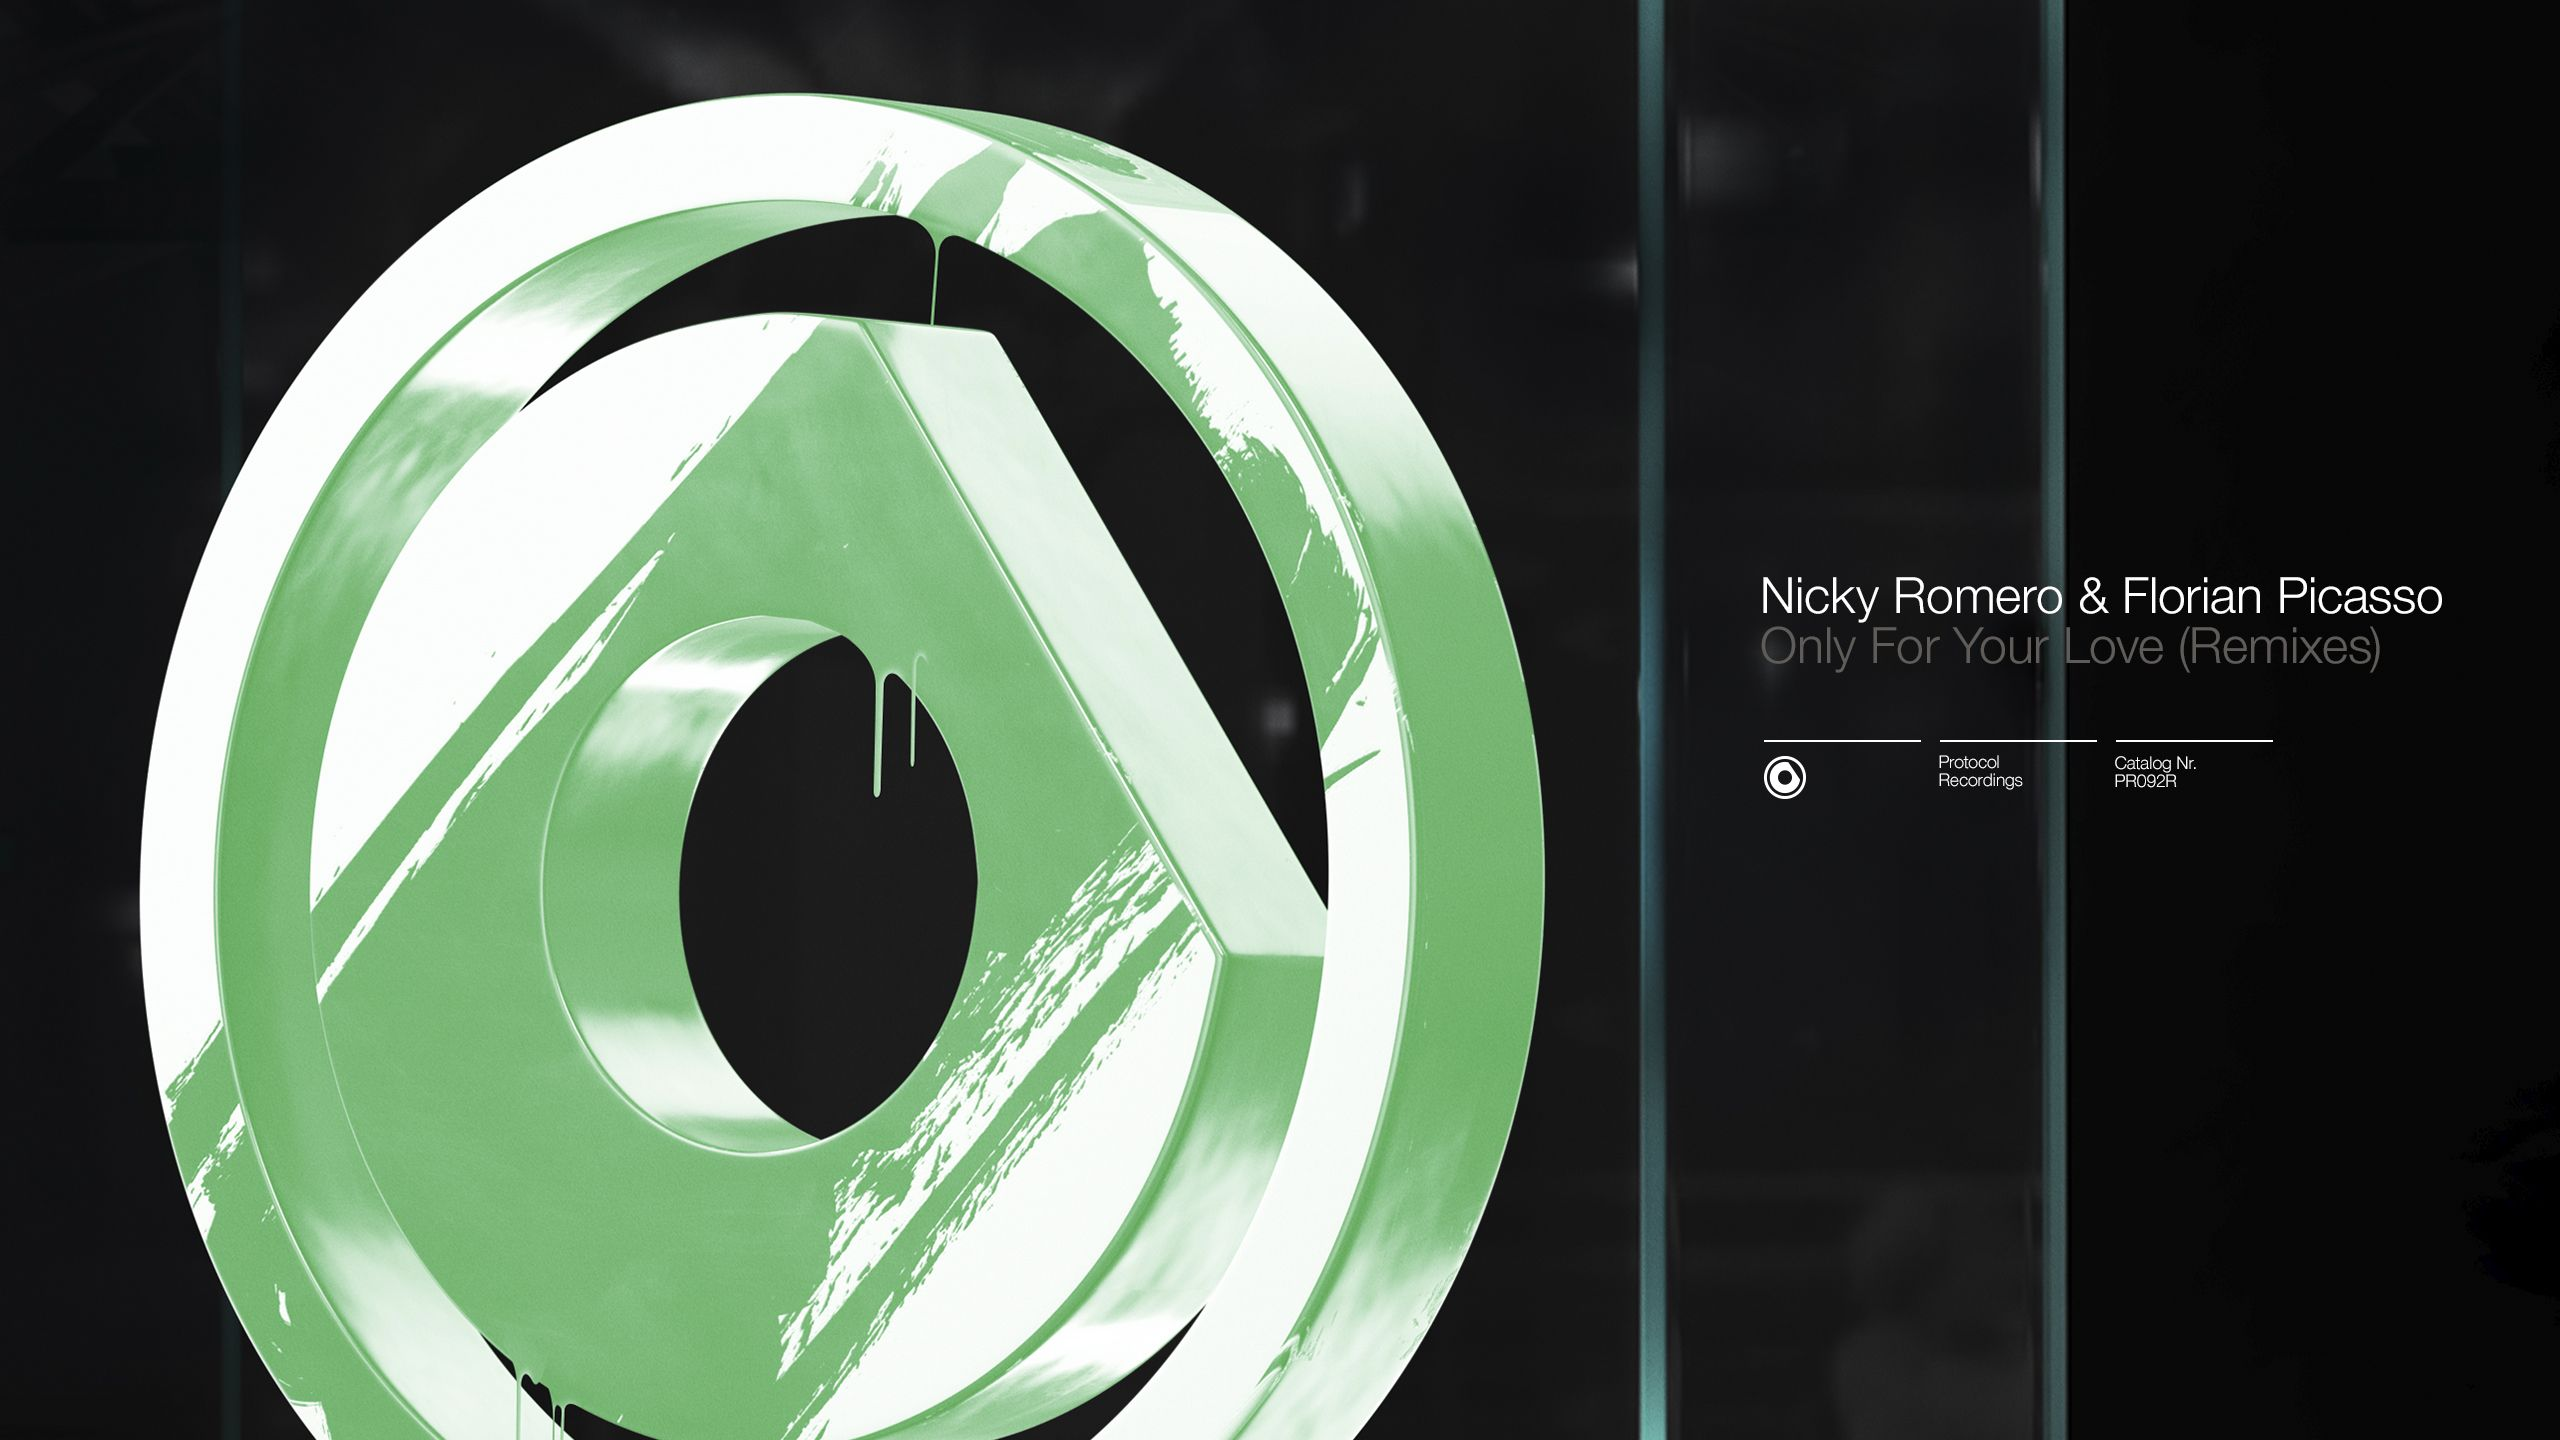 Out Now: Nicky Romero & Florian Picasso – Only For Your Love (Remixes)